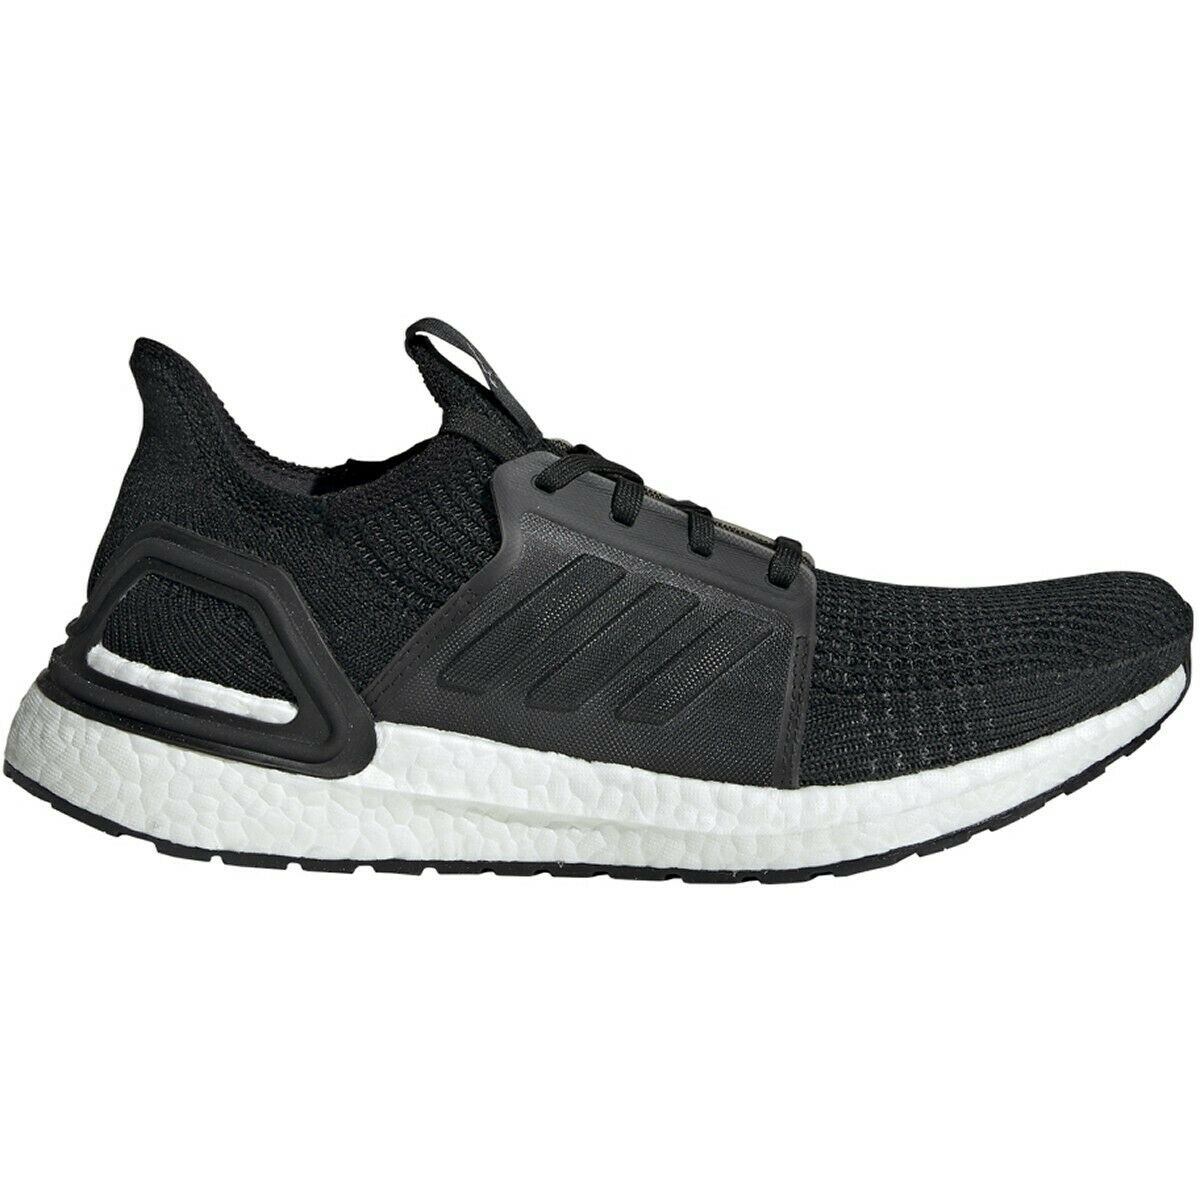 Adidas Men's Adidas Ultra Boost 19 - NEW IN BOX - FREE SHIPP